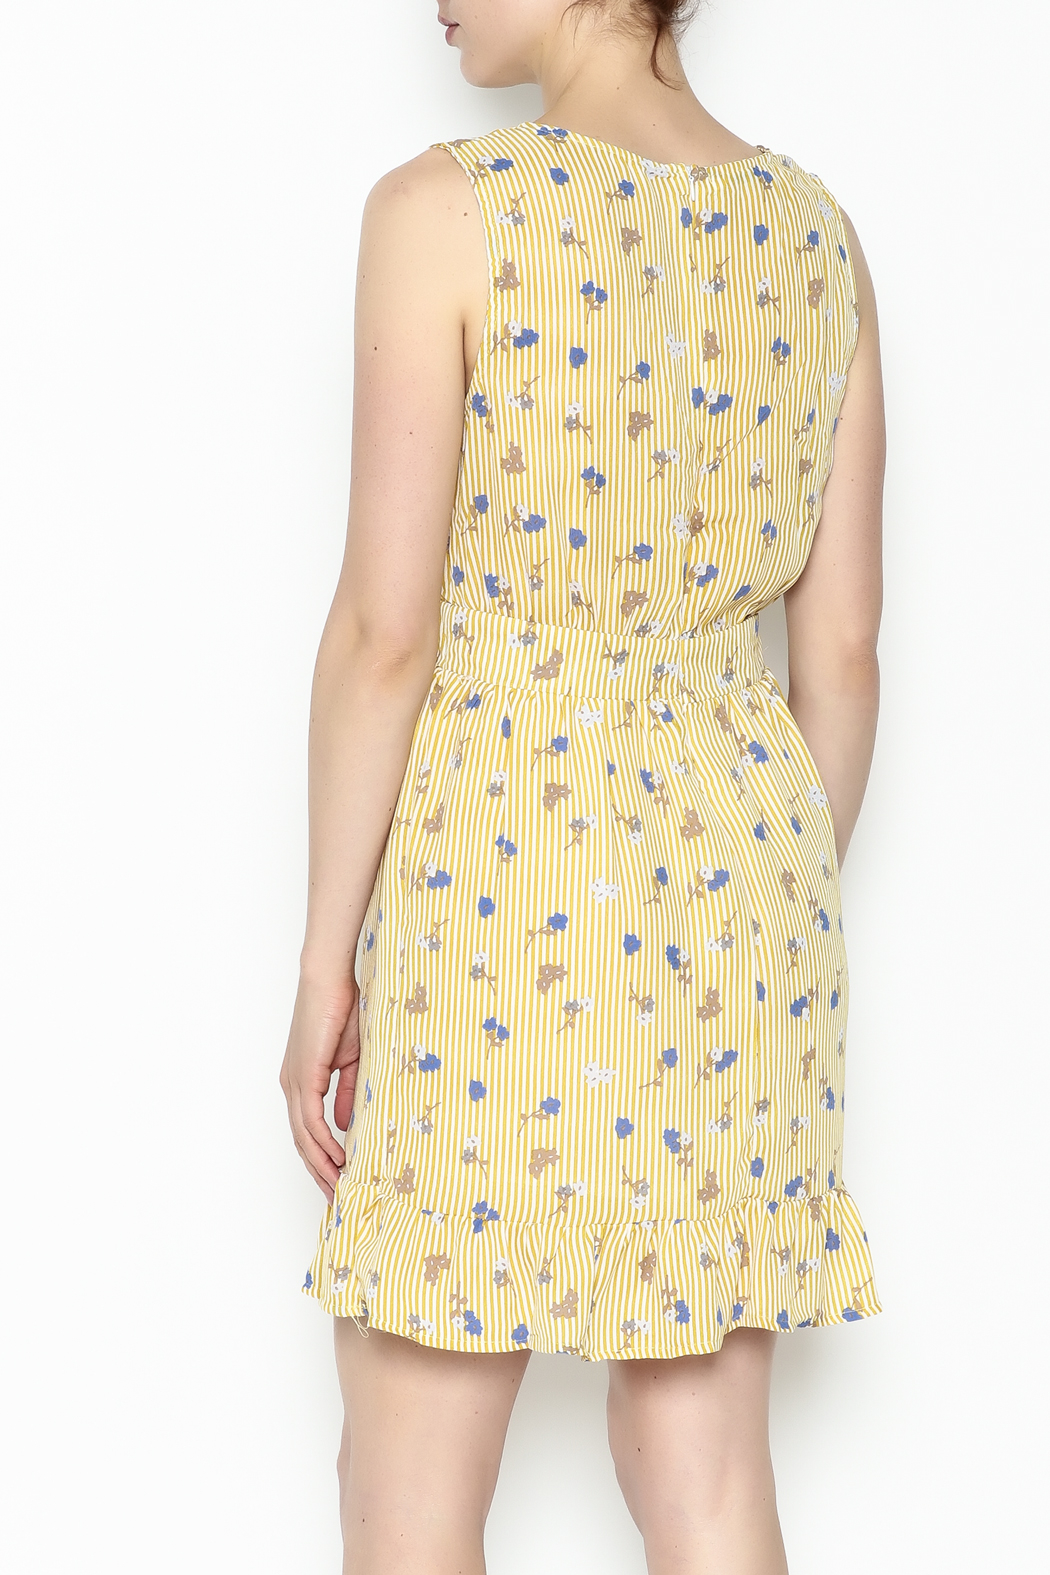 Runway Paris Striped Floral Dress - Back Cropped Image